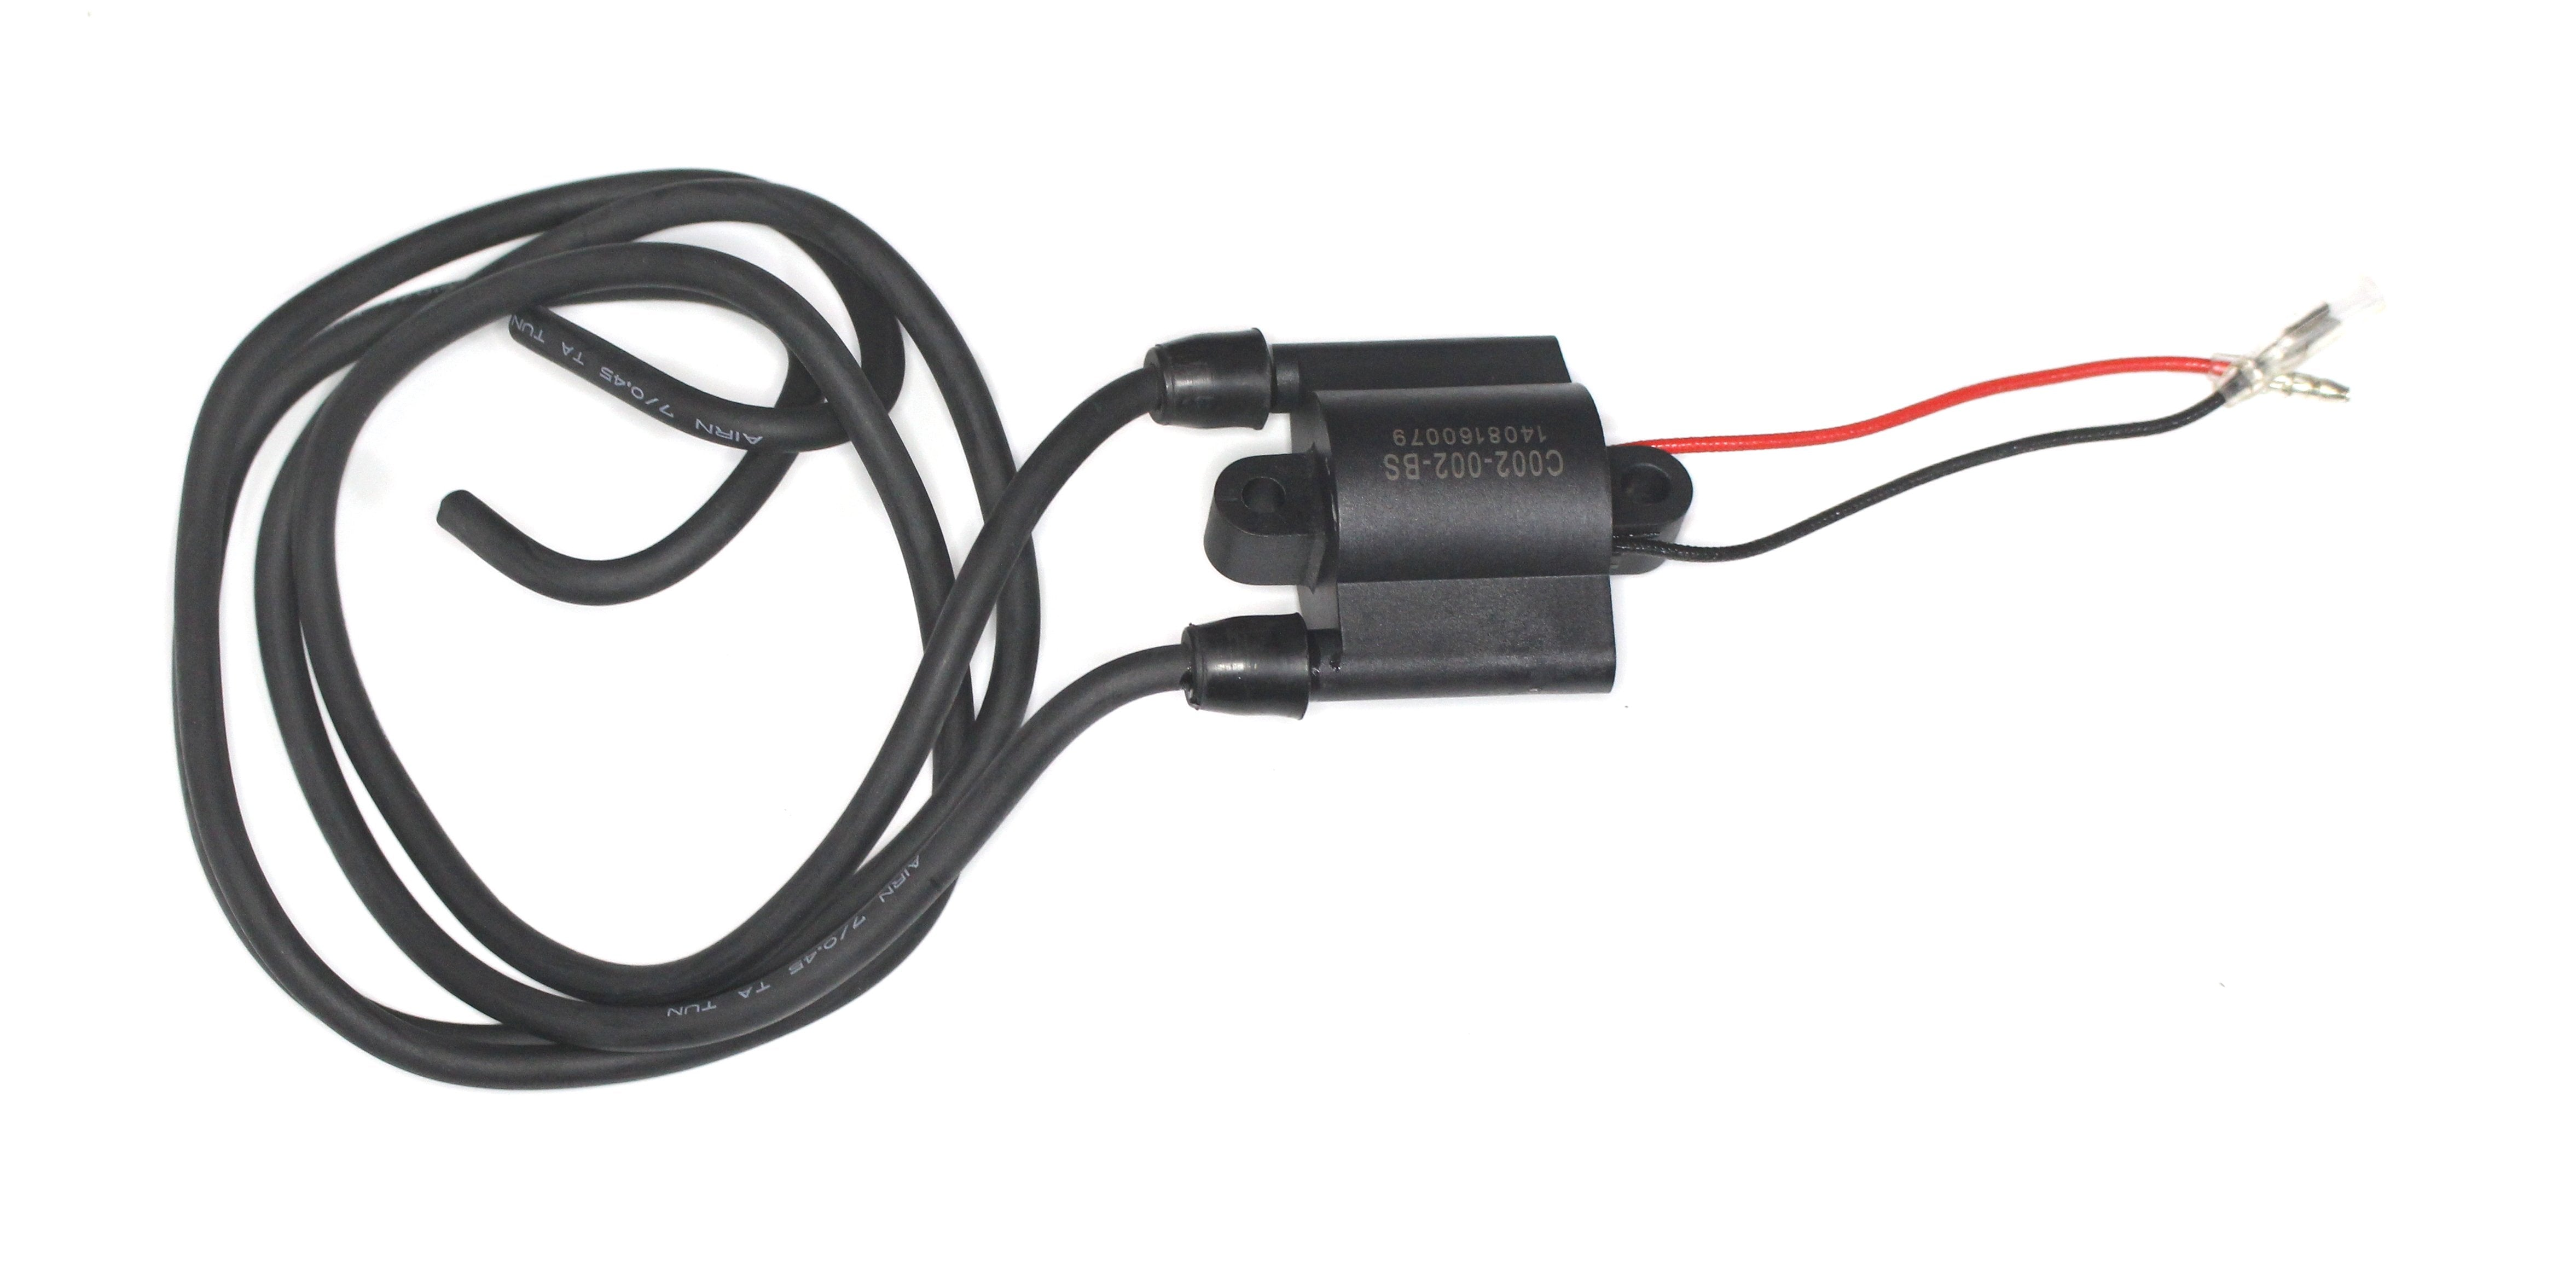 Throttle Cable for Snowmobile ARCTIC CAT BEARCAT 550 WIDETRACK 1996-2002